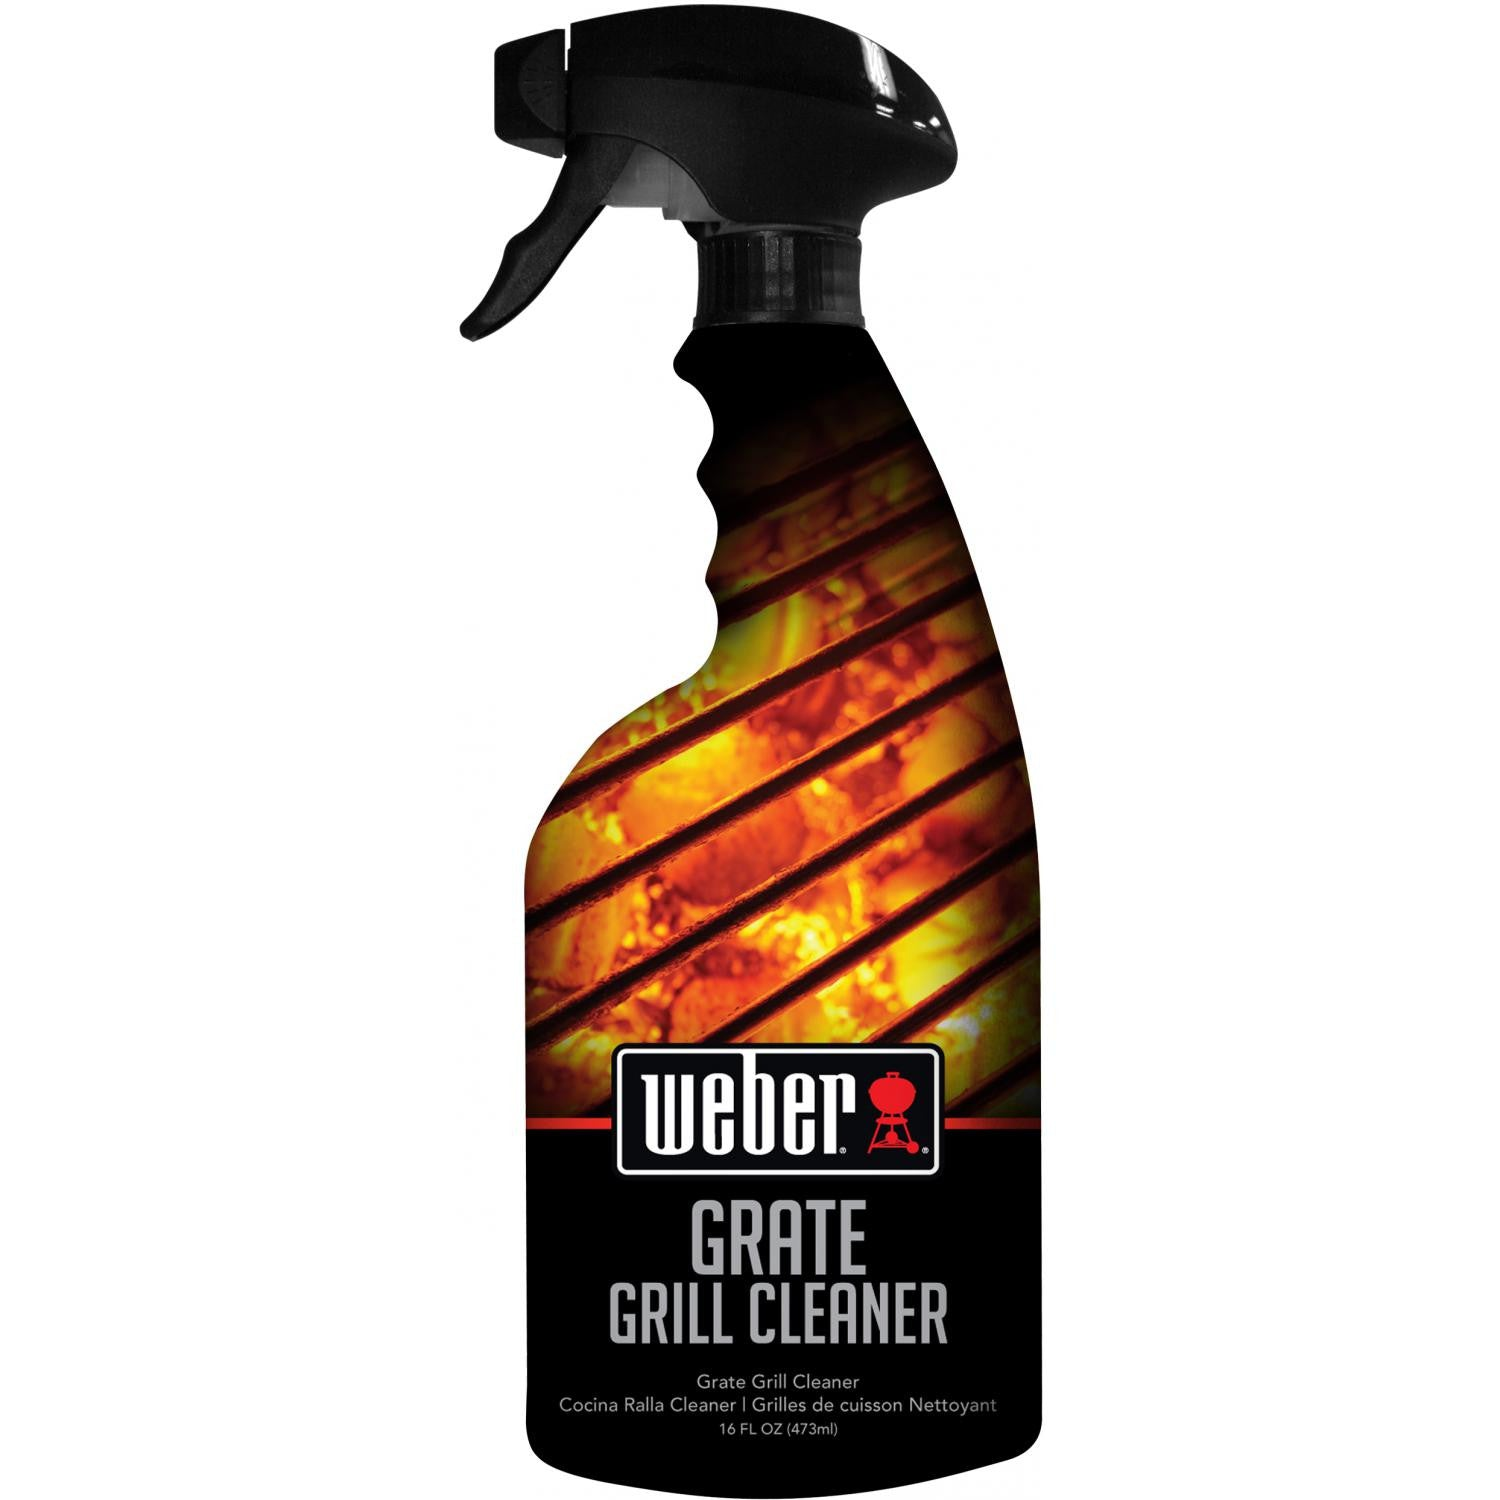 Weber Grate Grill Cleaner - 16 Oz.